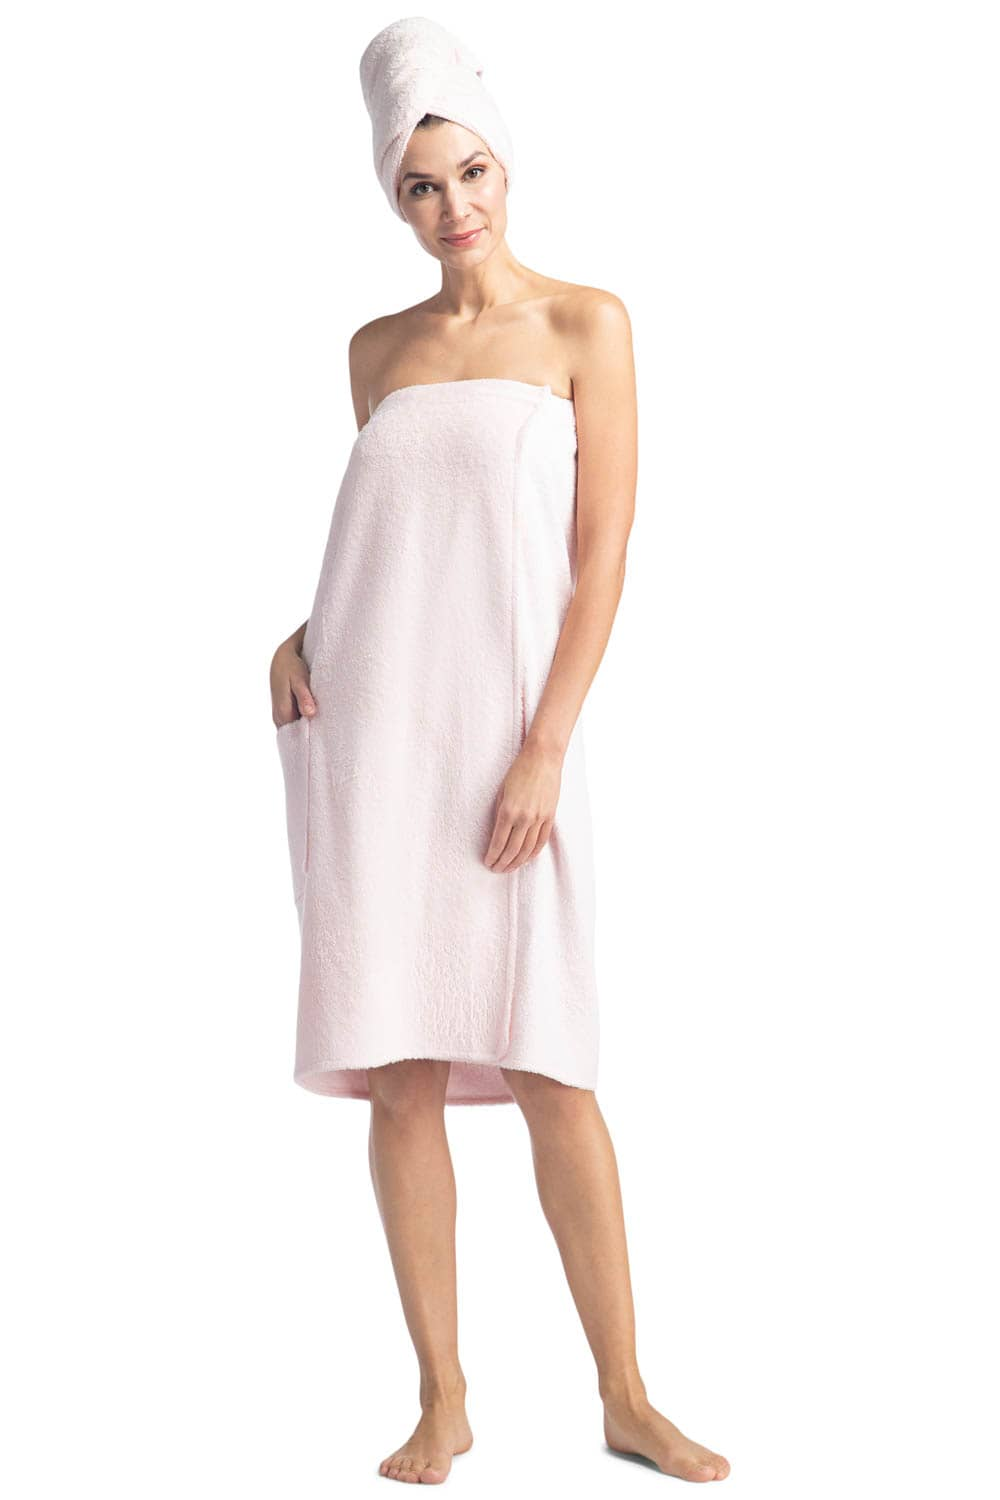 Women's Terry Cloth Spa Package - Body Wrap and Hair Towel - Fishers Finery